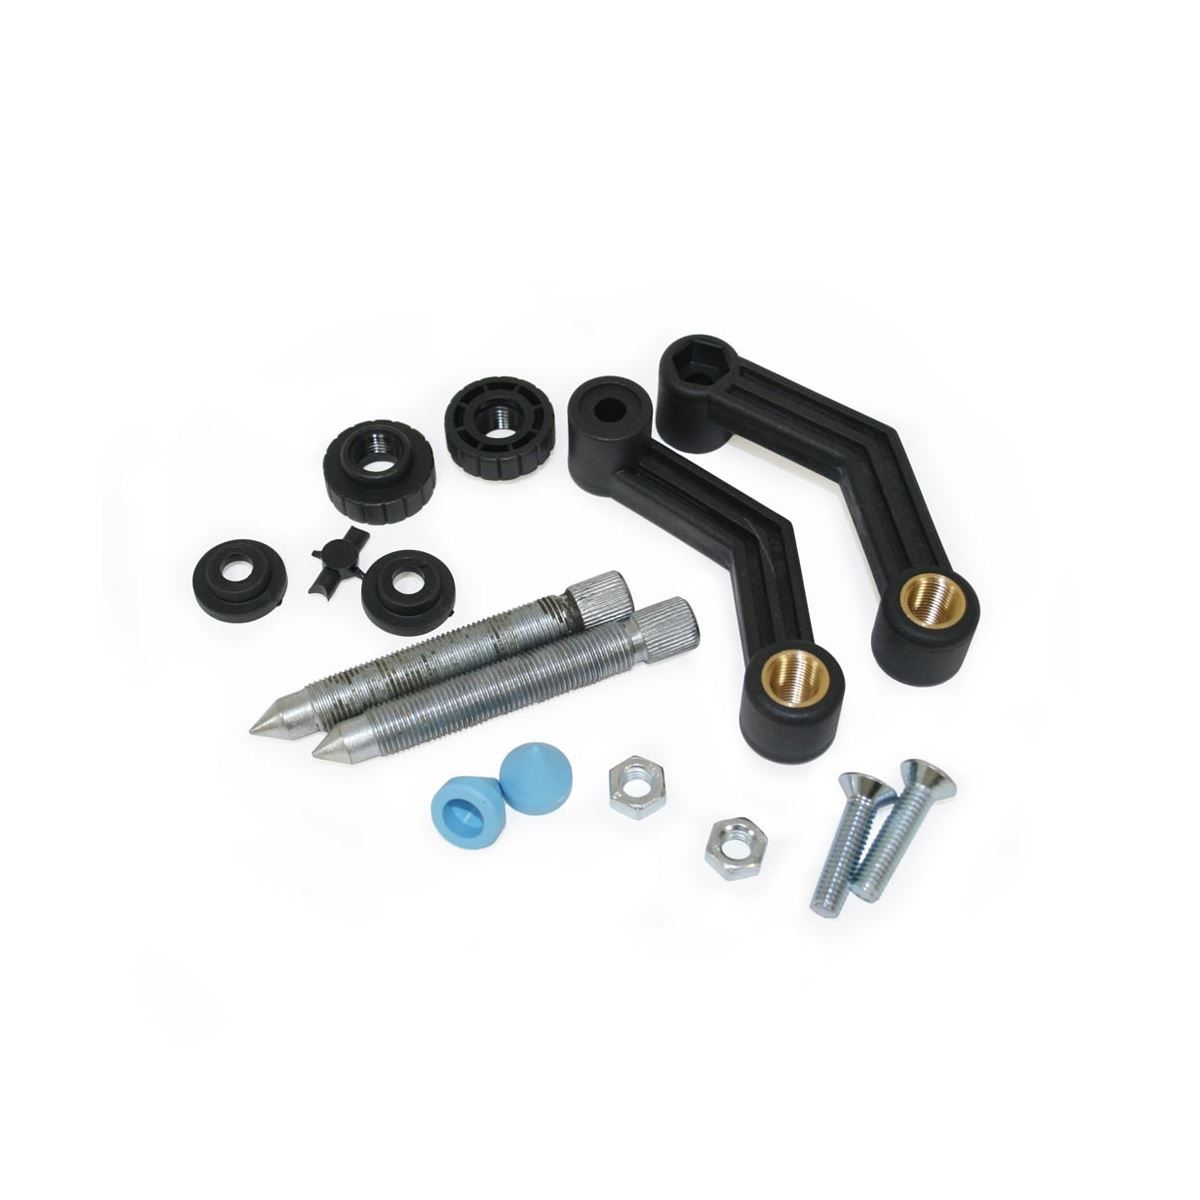 Tacx Spare - Fitting Kit Exact: